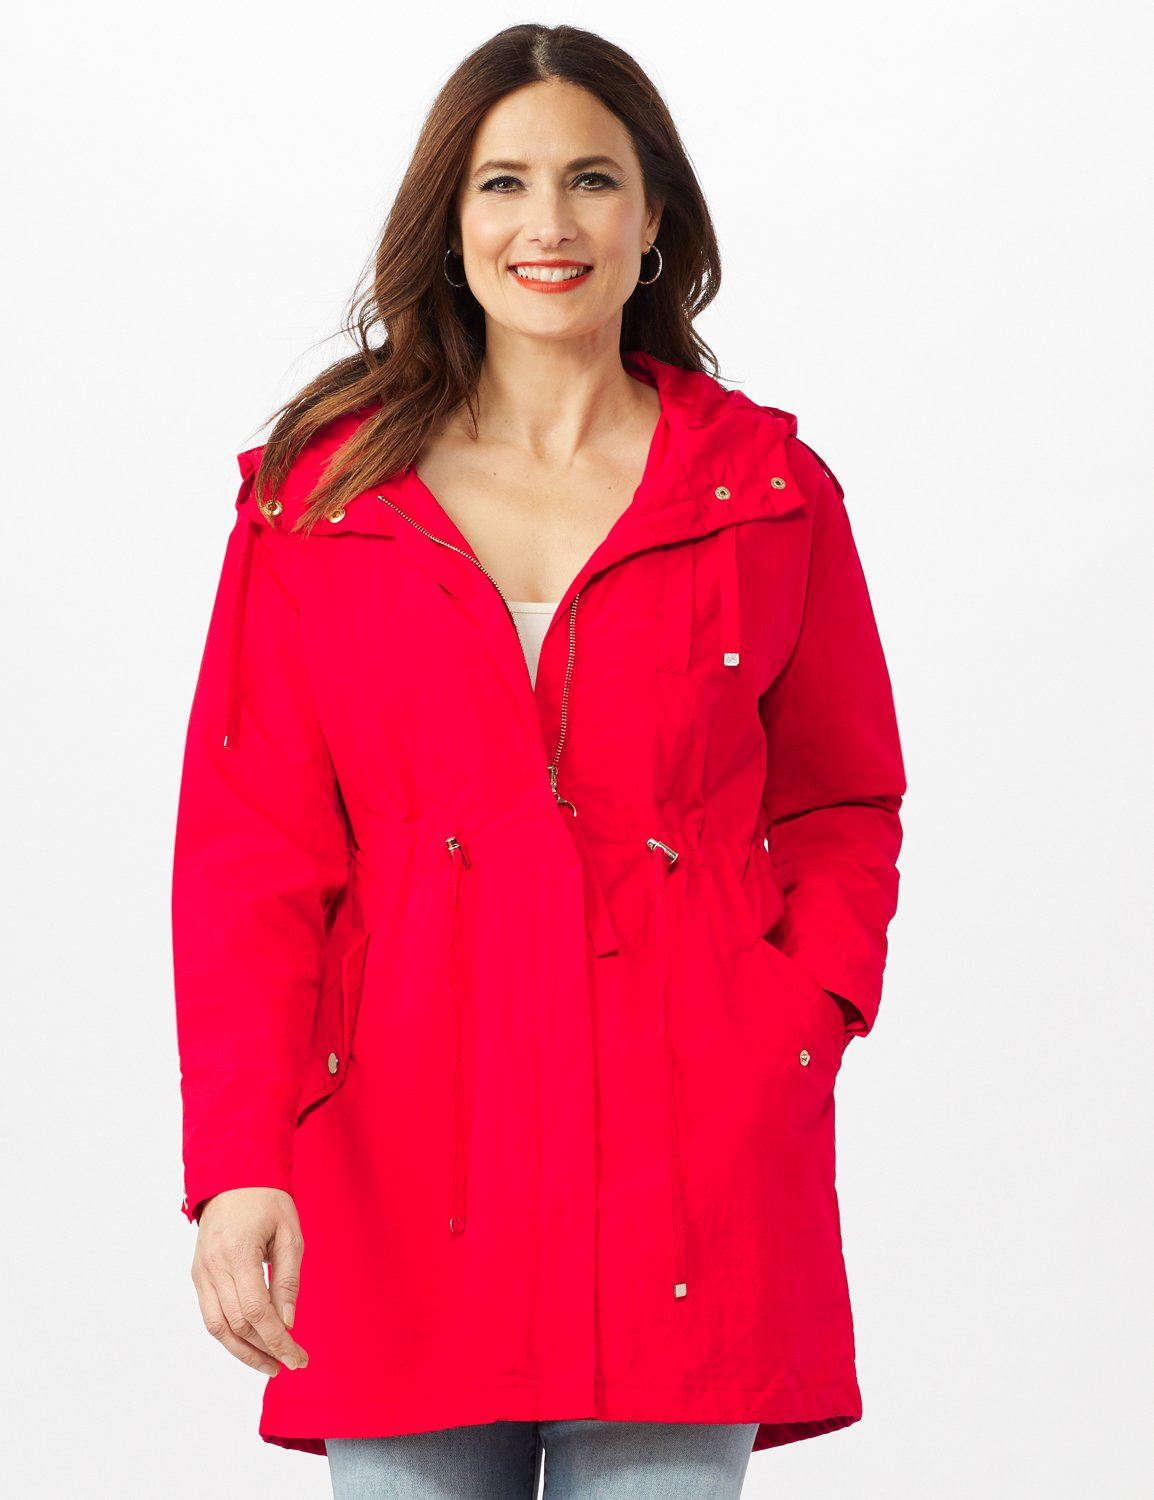 Hooded Zip Front Utility Jacket with Slant, Waist Drawcord, Chest Zip Pockets -R.red - Front